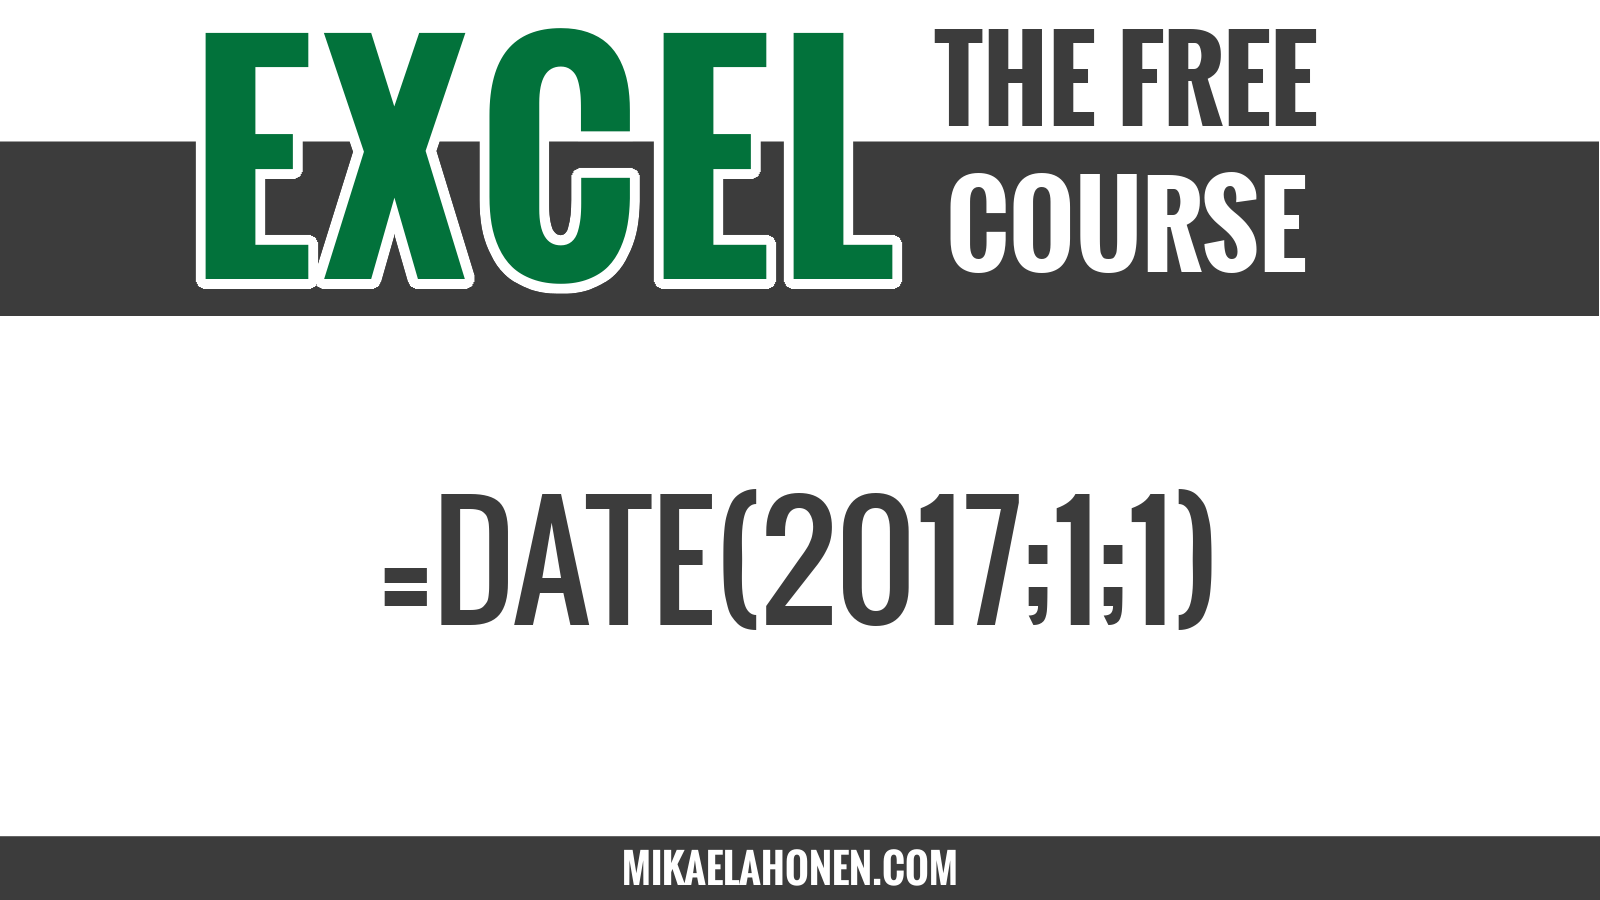 Lecture 5 - Number formats, dates and time in Excel